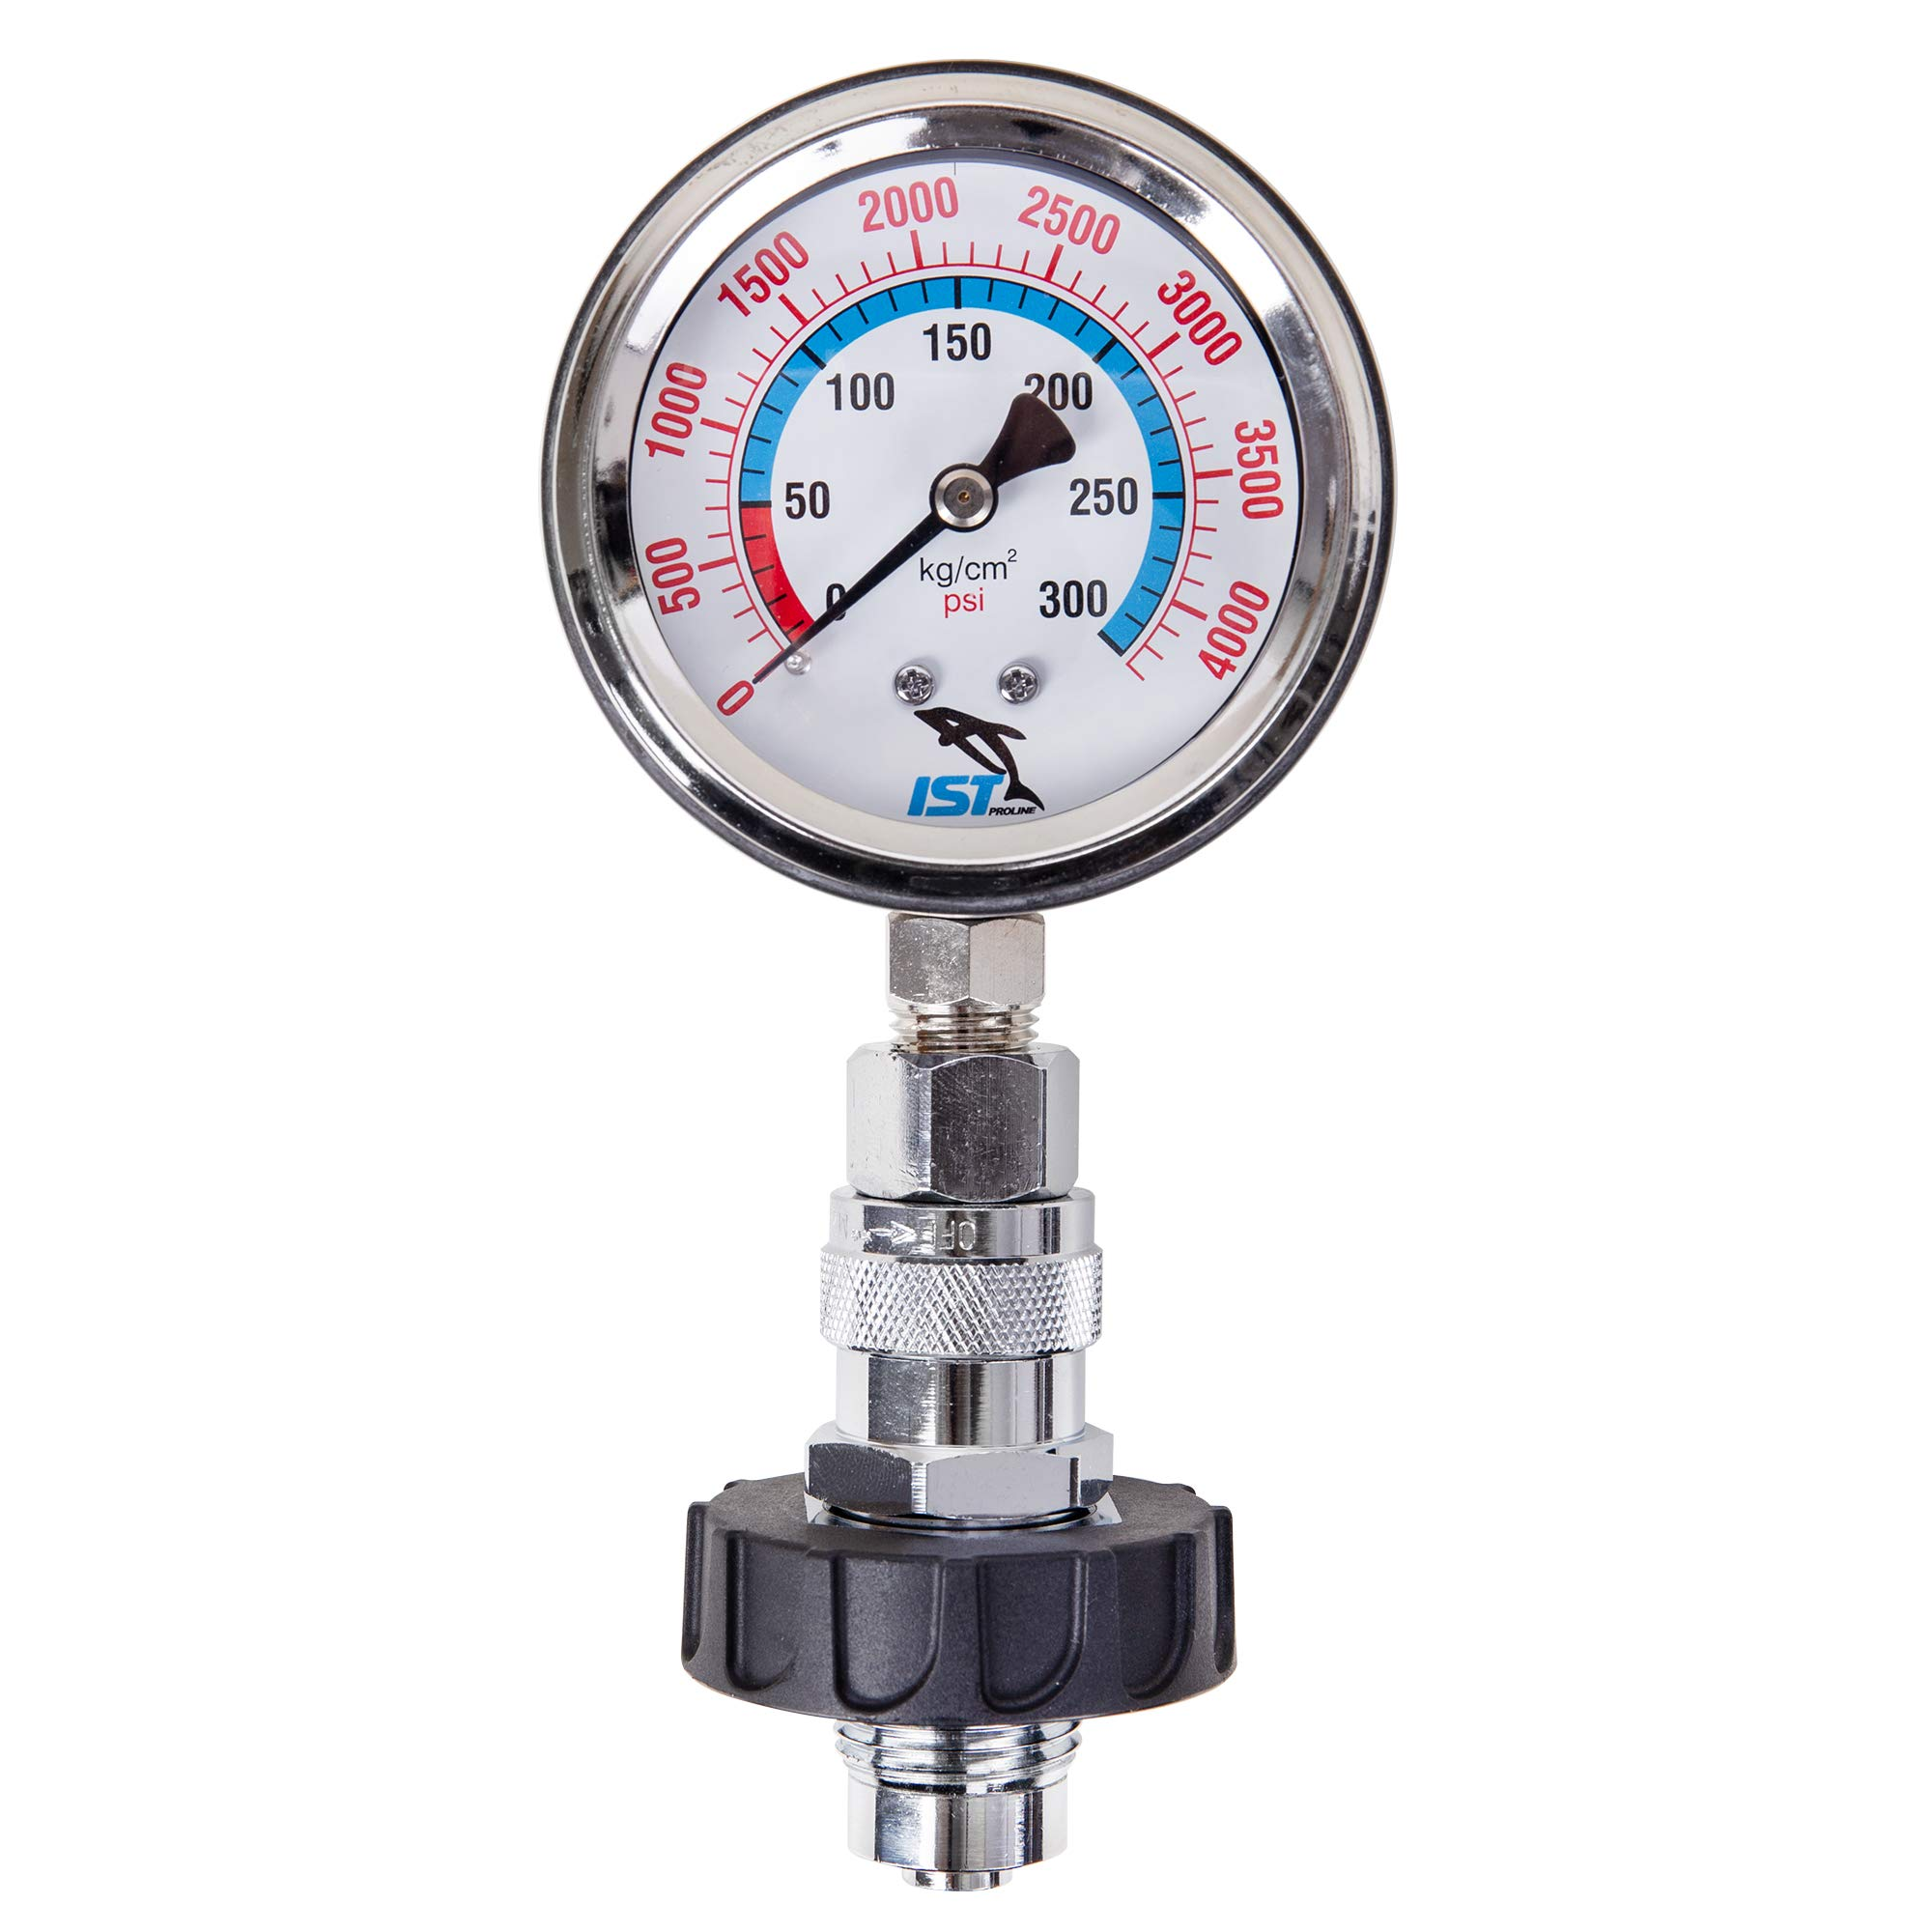 IST CT-1 Premium DIN Tank Pressure Checker With Gauge